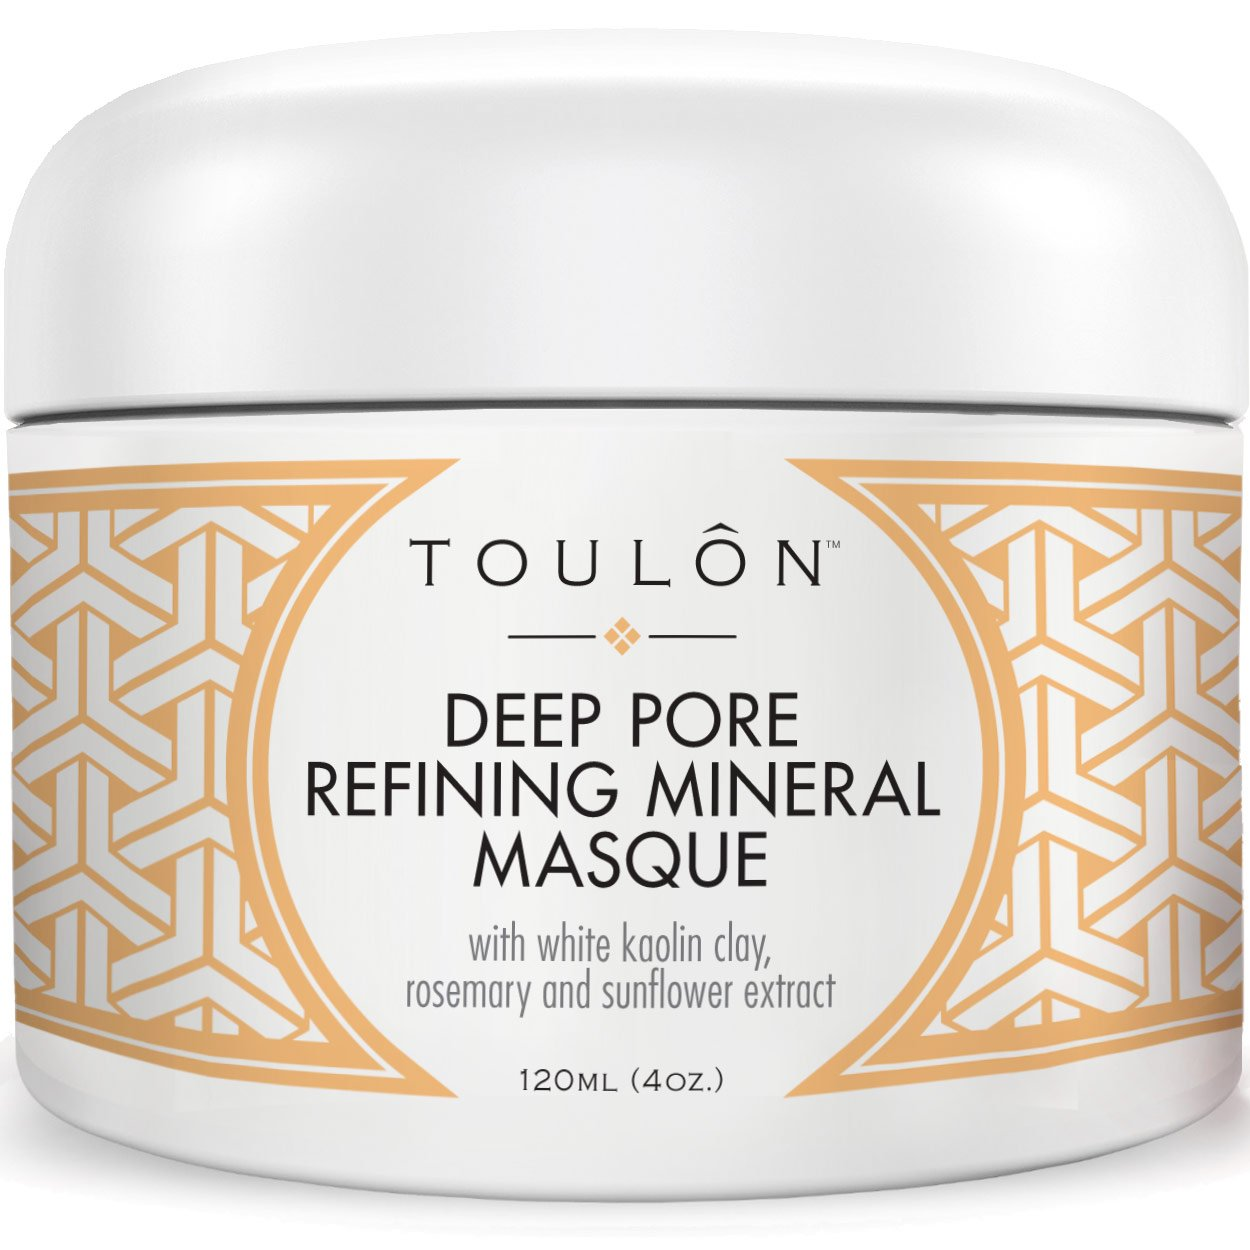 Clay Mask for Face with White Kaolin Mineral Clay. Reduces Wrinkles, Rids Blackheads, Acne & Dirt & Improves Complexion. TOULON NA